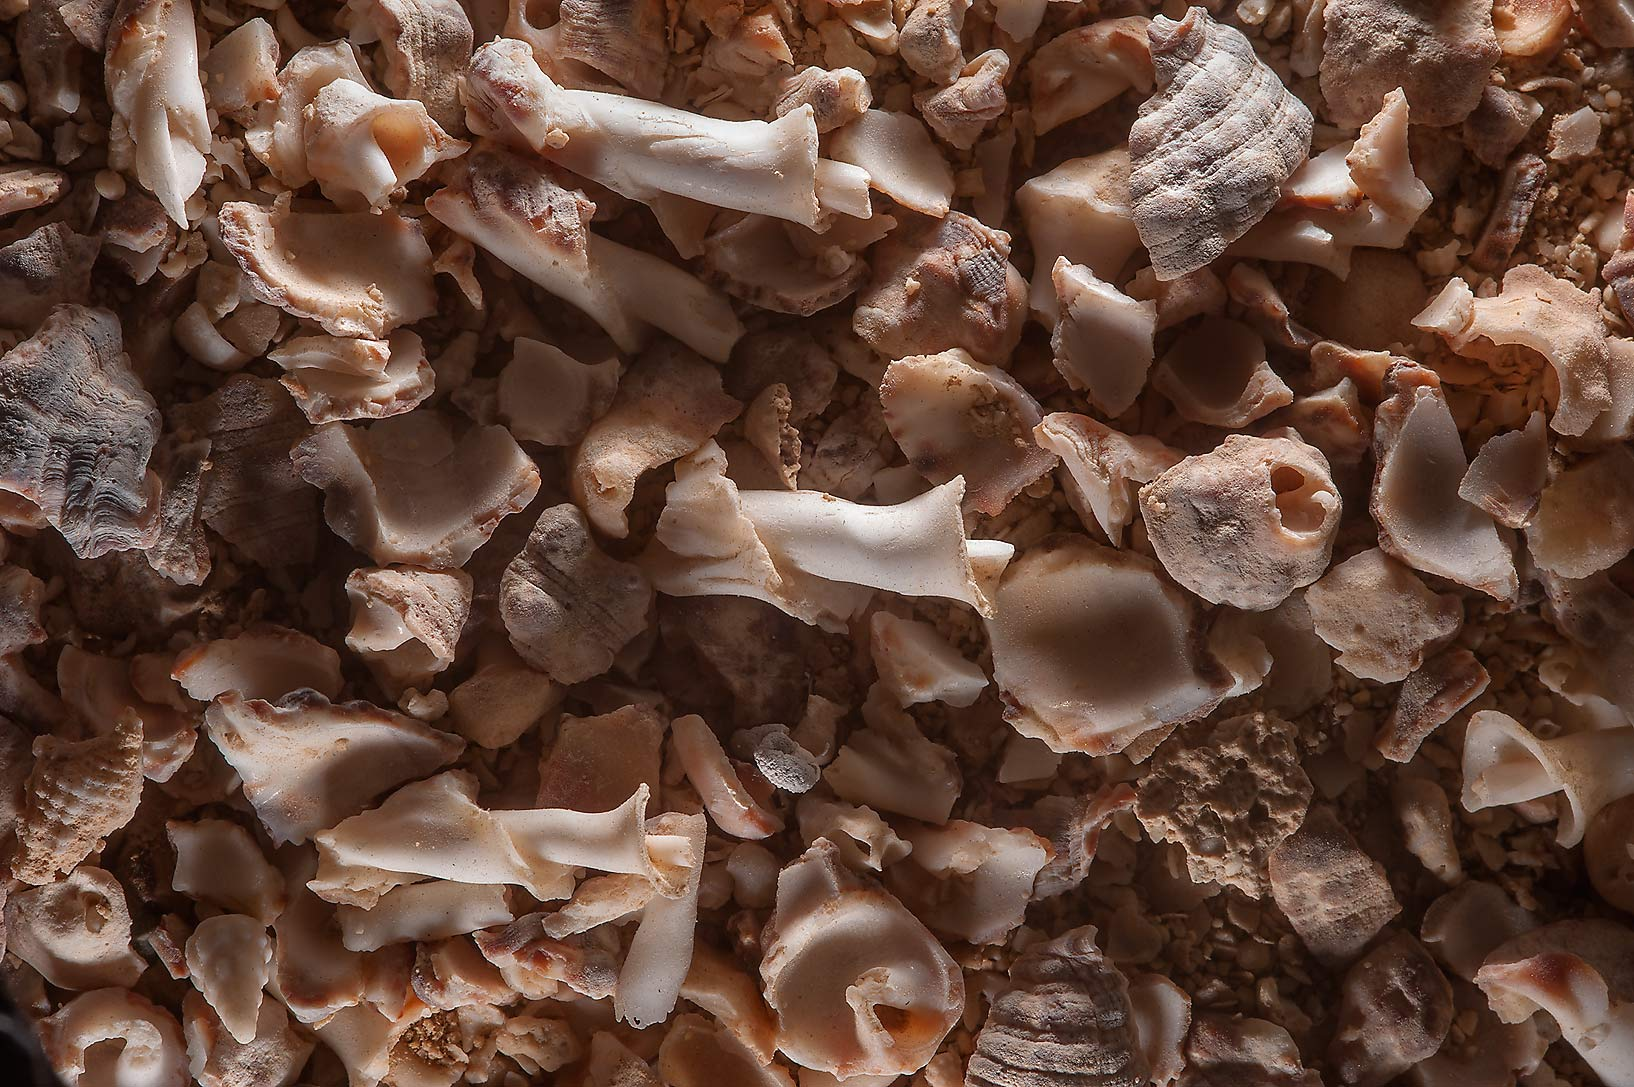 Crushed shells of a sea snail Thais Savignyi from...Jazirat Bin Ghanim). Al Khor, Qatar